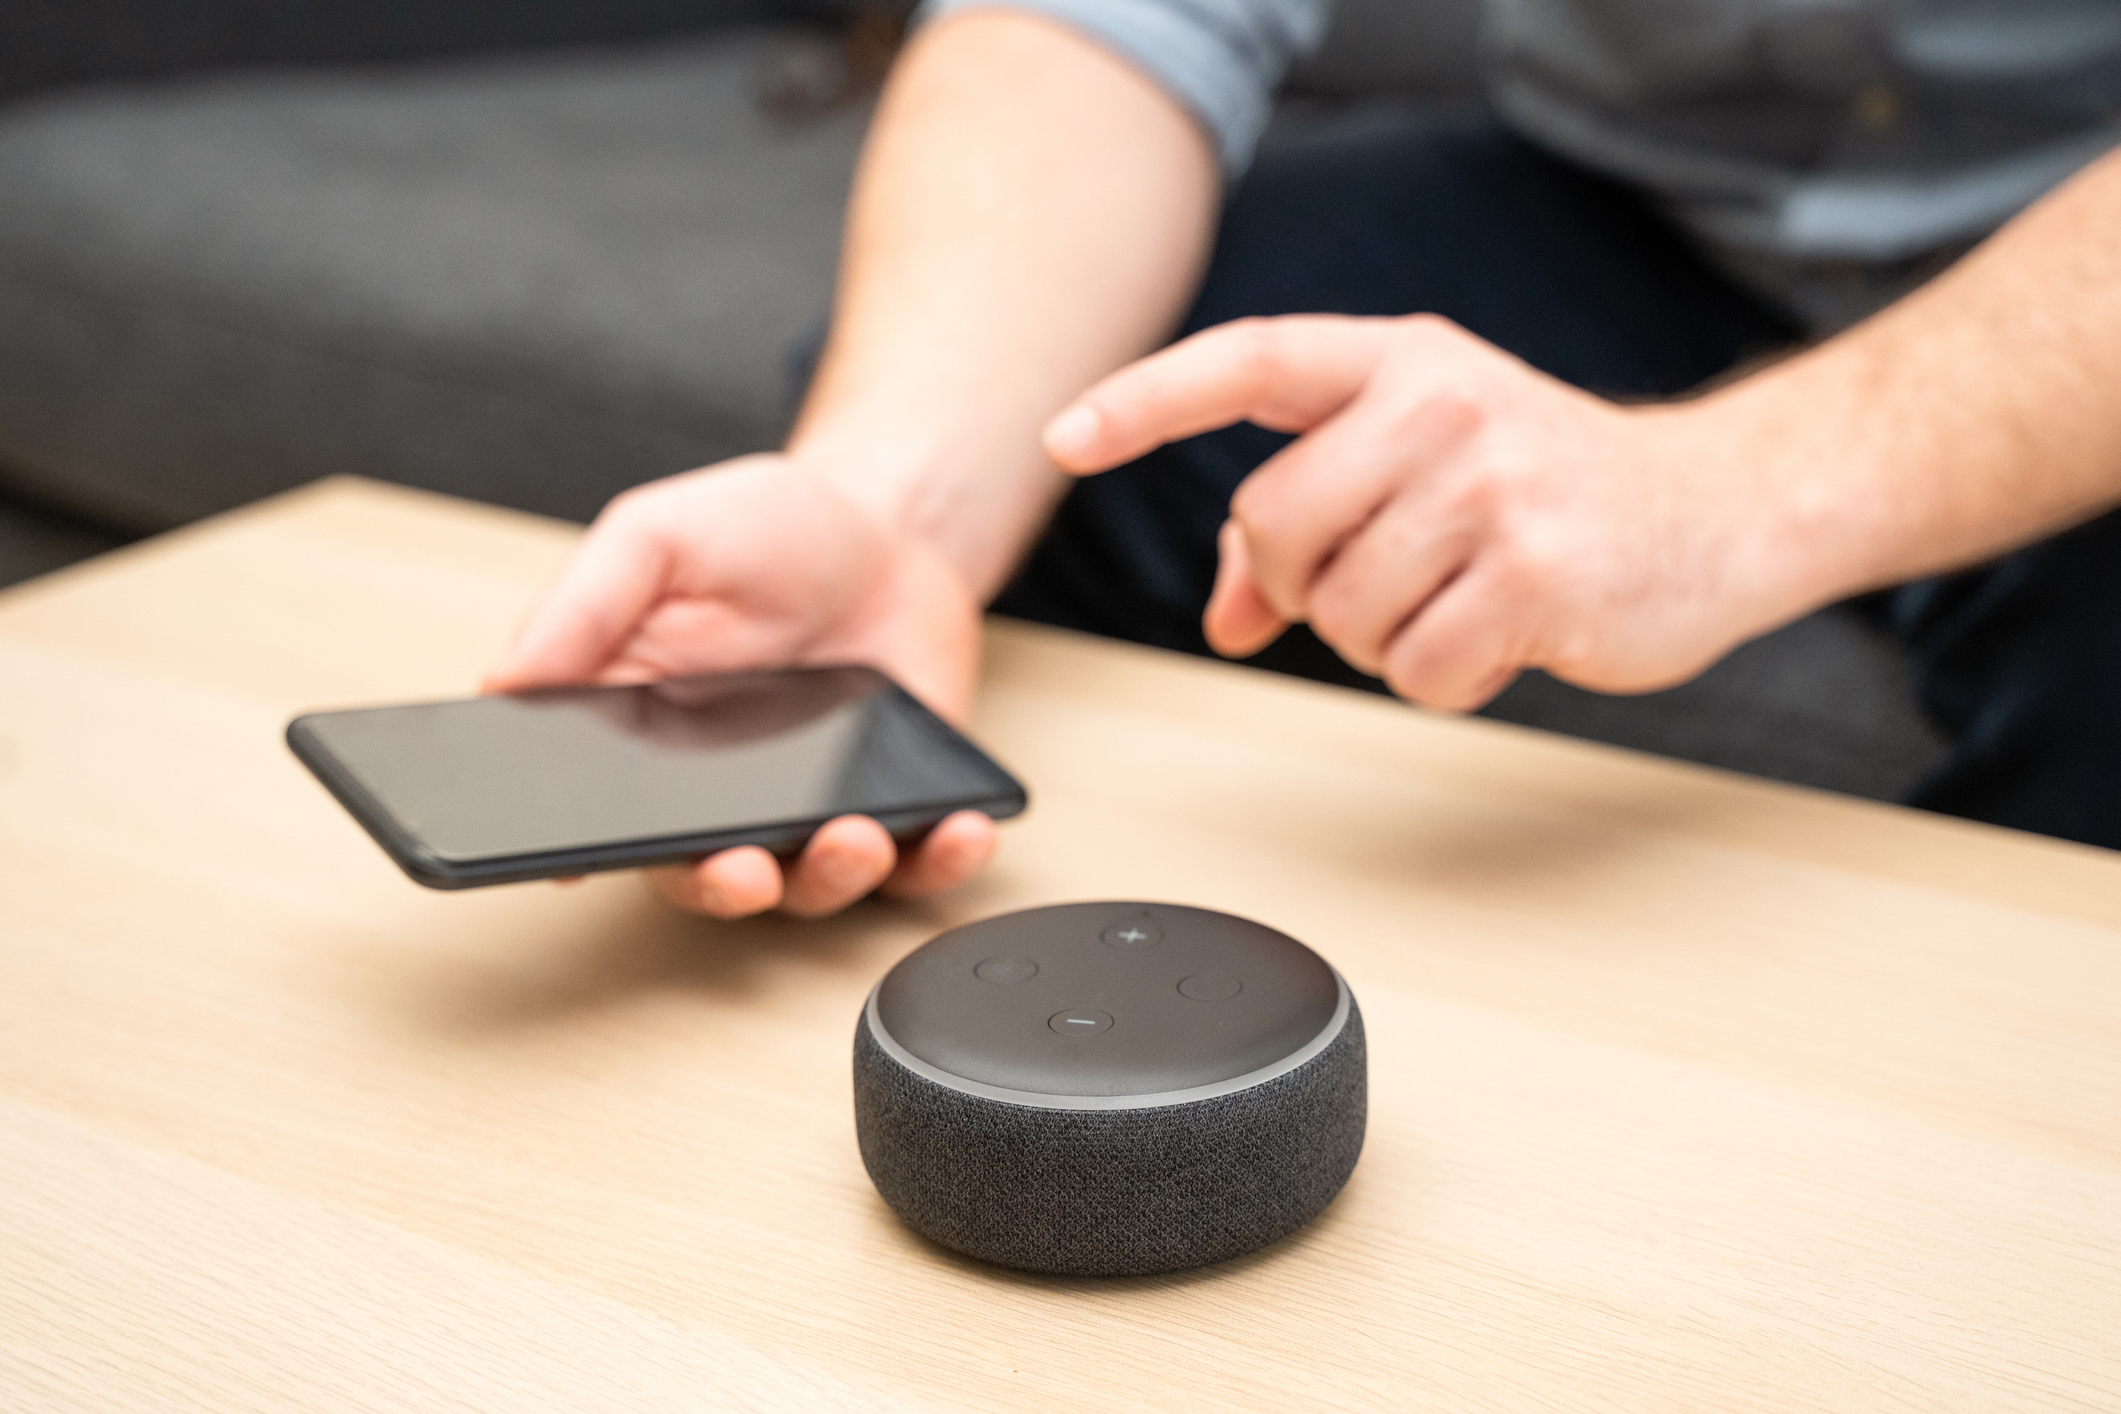 Man using home assistant bluetooth speaker